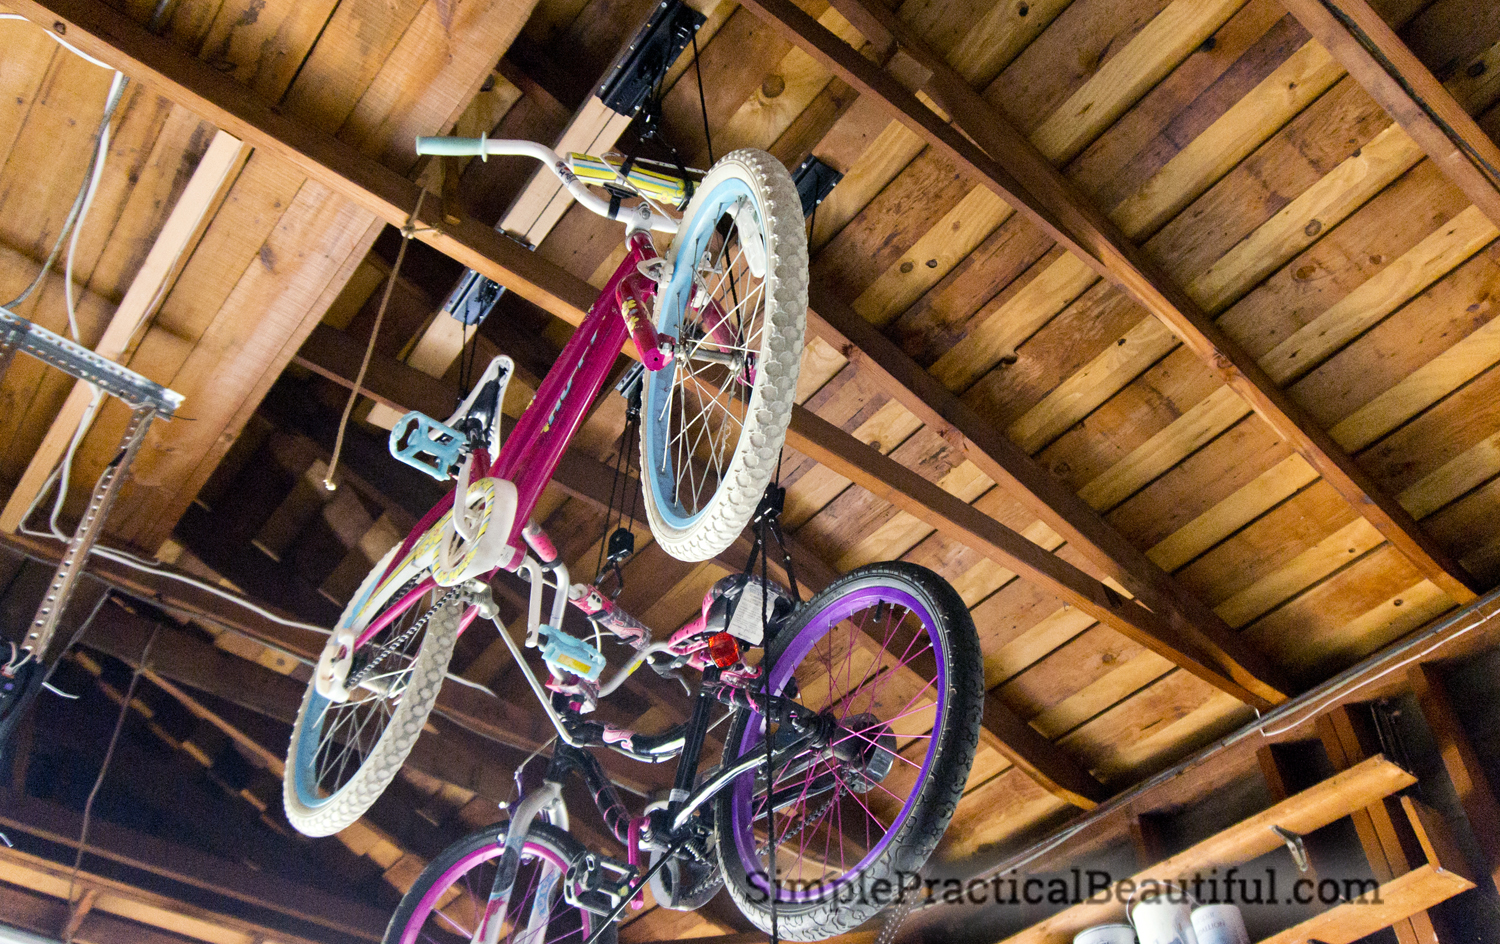 2 Car Garage Bike Storage How To Hang A Bicycle Lift Simple Practical Beautiful